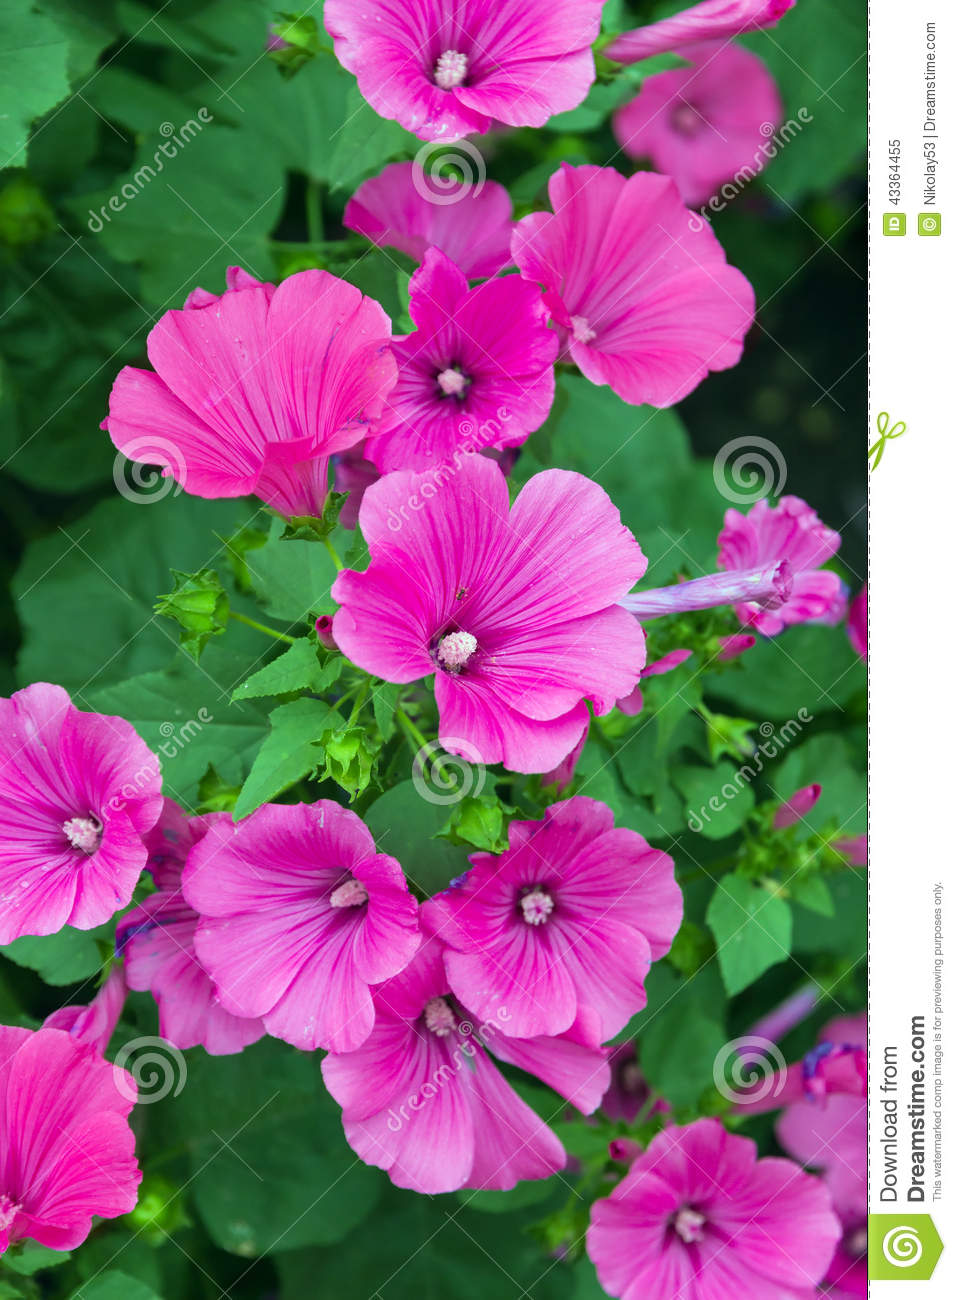 Pink flowers stock image image of photo green backgrounds 43364455 pink flowers mightylinksfo